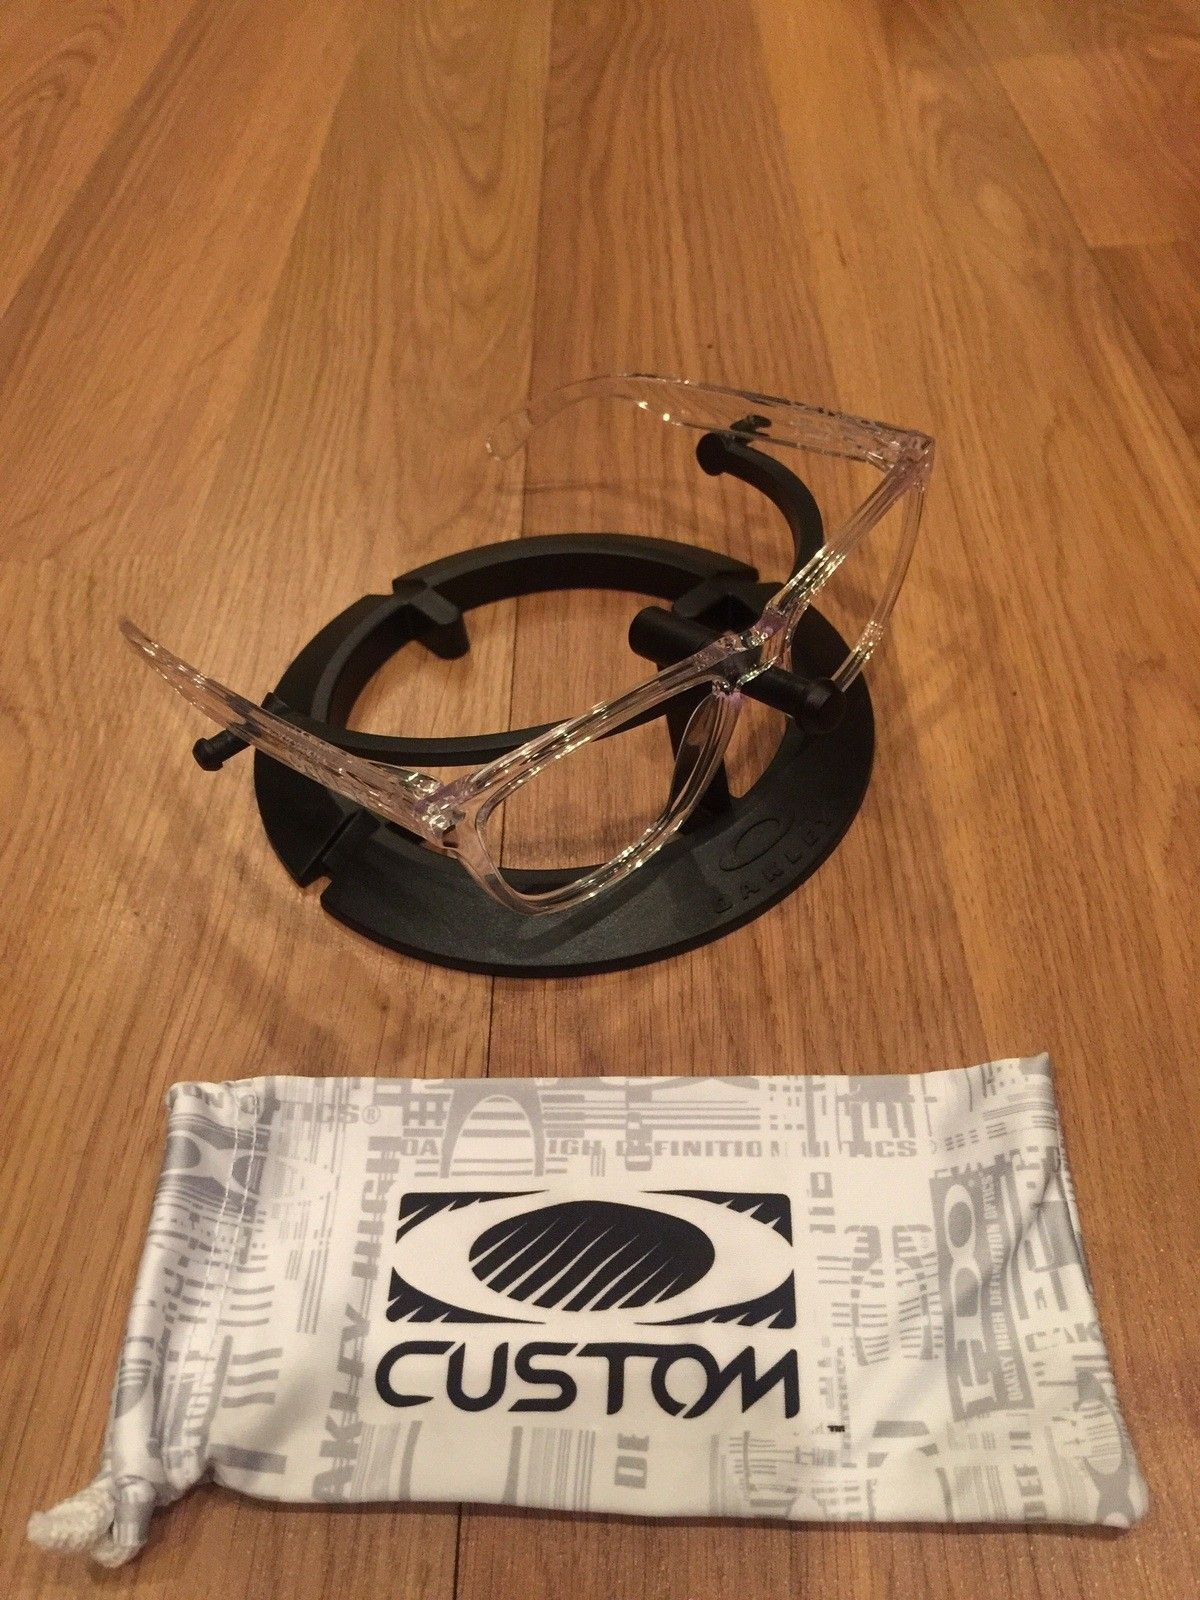 OCP clear frogskin frame $45 shipped - image.jpg